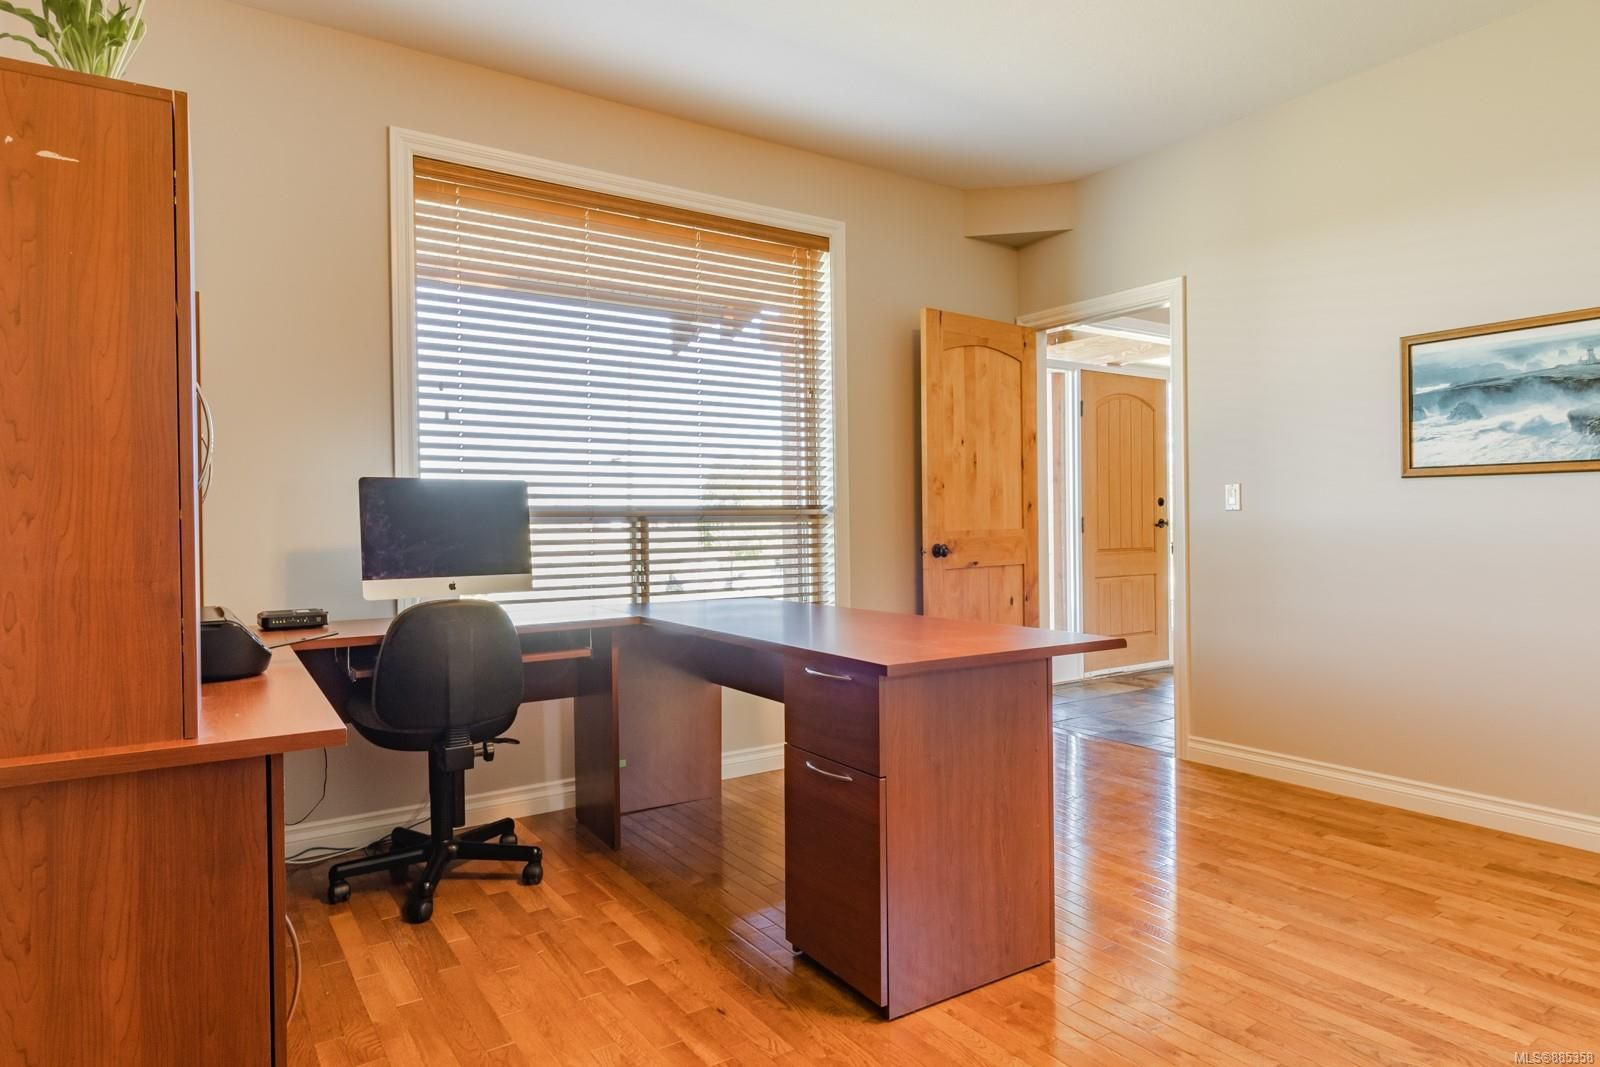 Photo 24: Photos: 2850 Peters Rd in : PQ Qualicum Beach House for sale (Parksville/Qualicum)  : MLS®# 885358